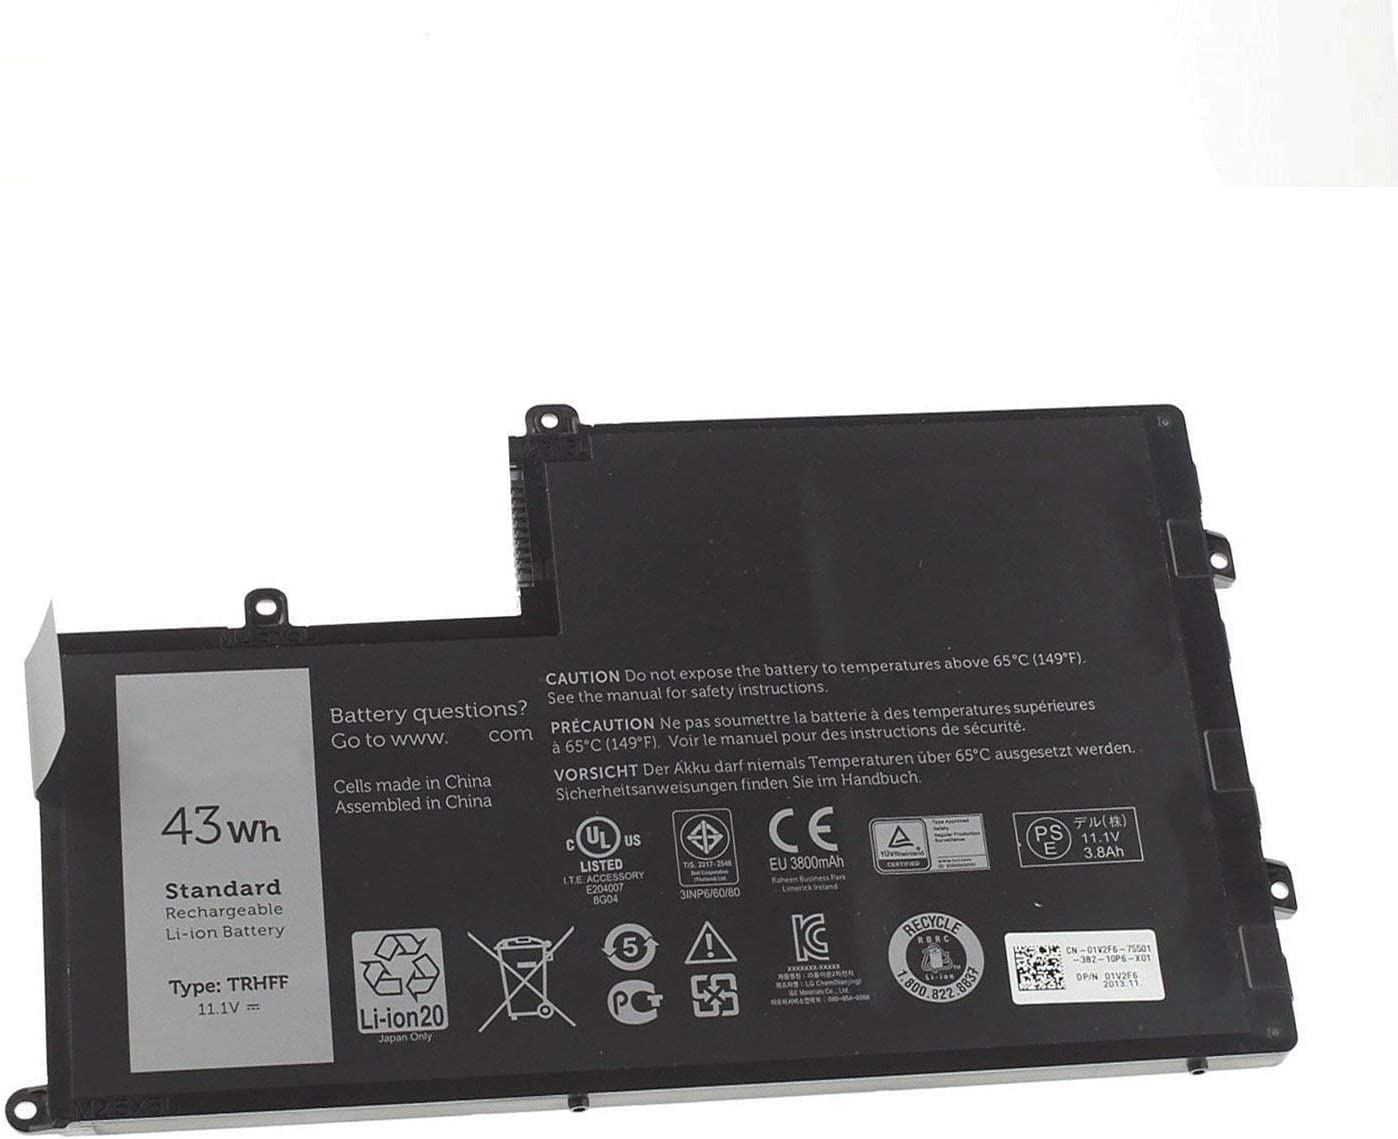 Fully TRHFF Replacement Battery Compatible with Dell INSPIRON N5447 N5547 Latitude 14 3450 15 3550 DL011307-PRR13G01 1V2F6 01V2F 1WWHW P39F Series Laptop - 11.1V 43Wh